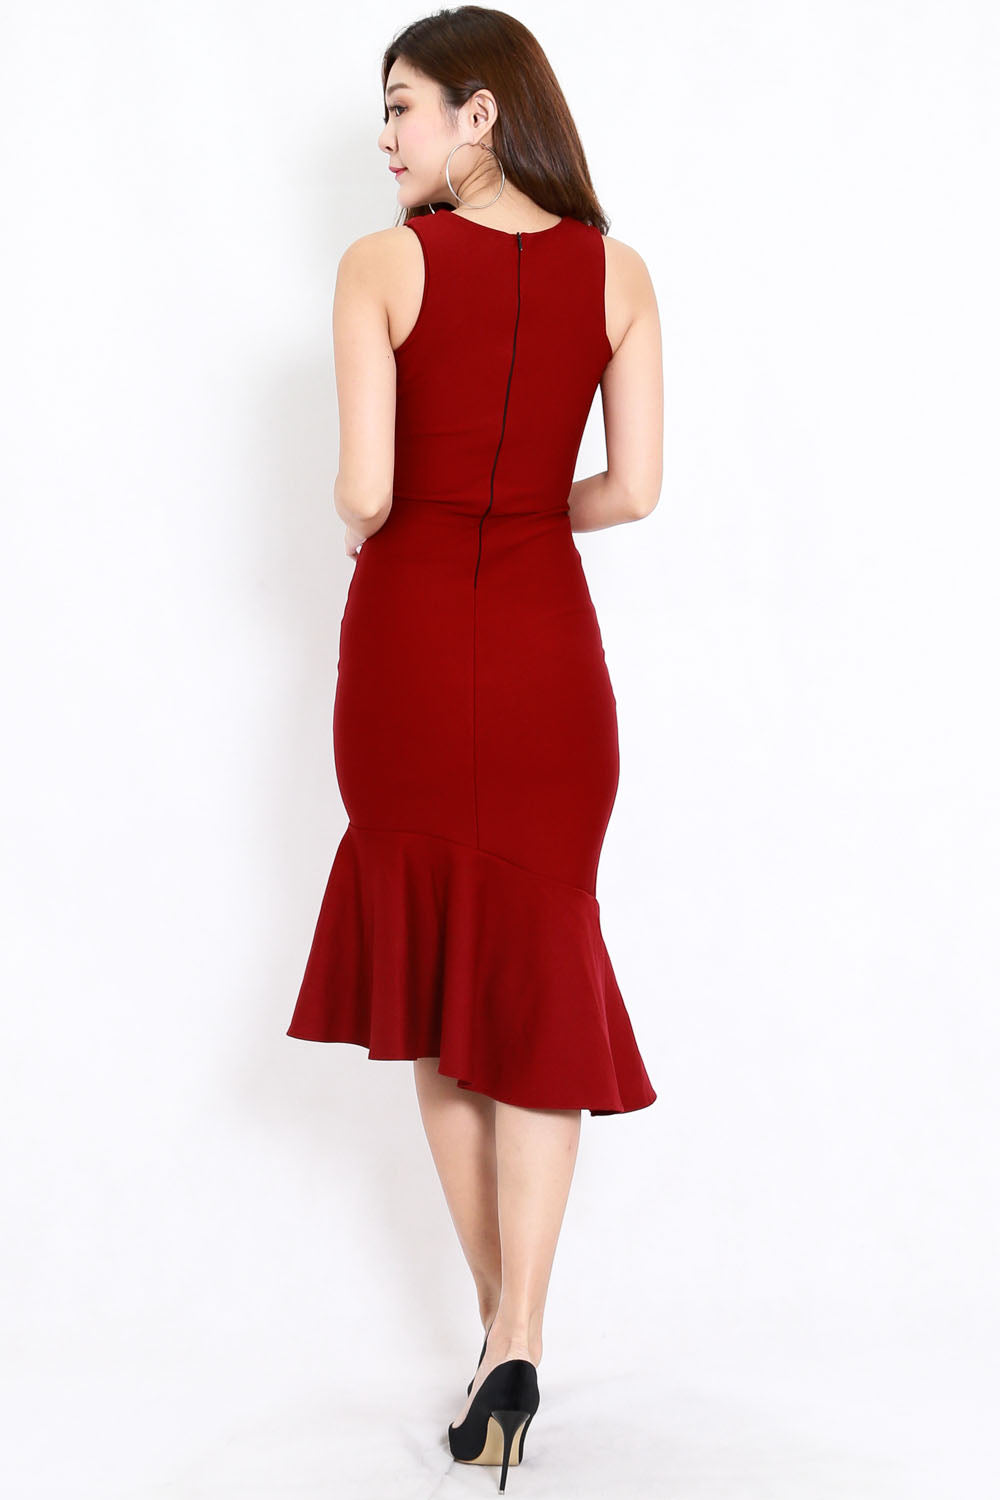 *Premium* Cassia Mermaid Slit Dress (Maroon)